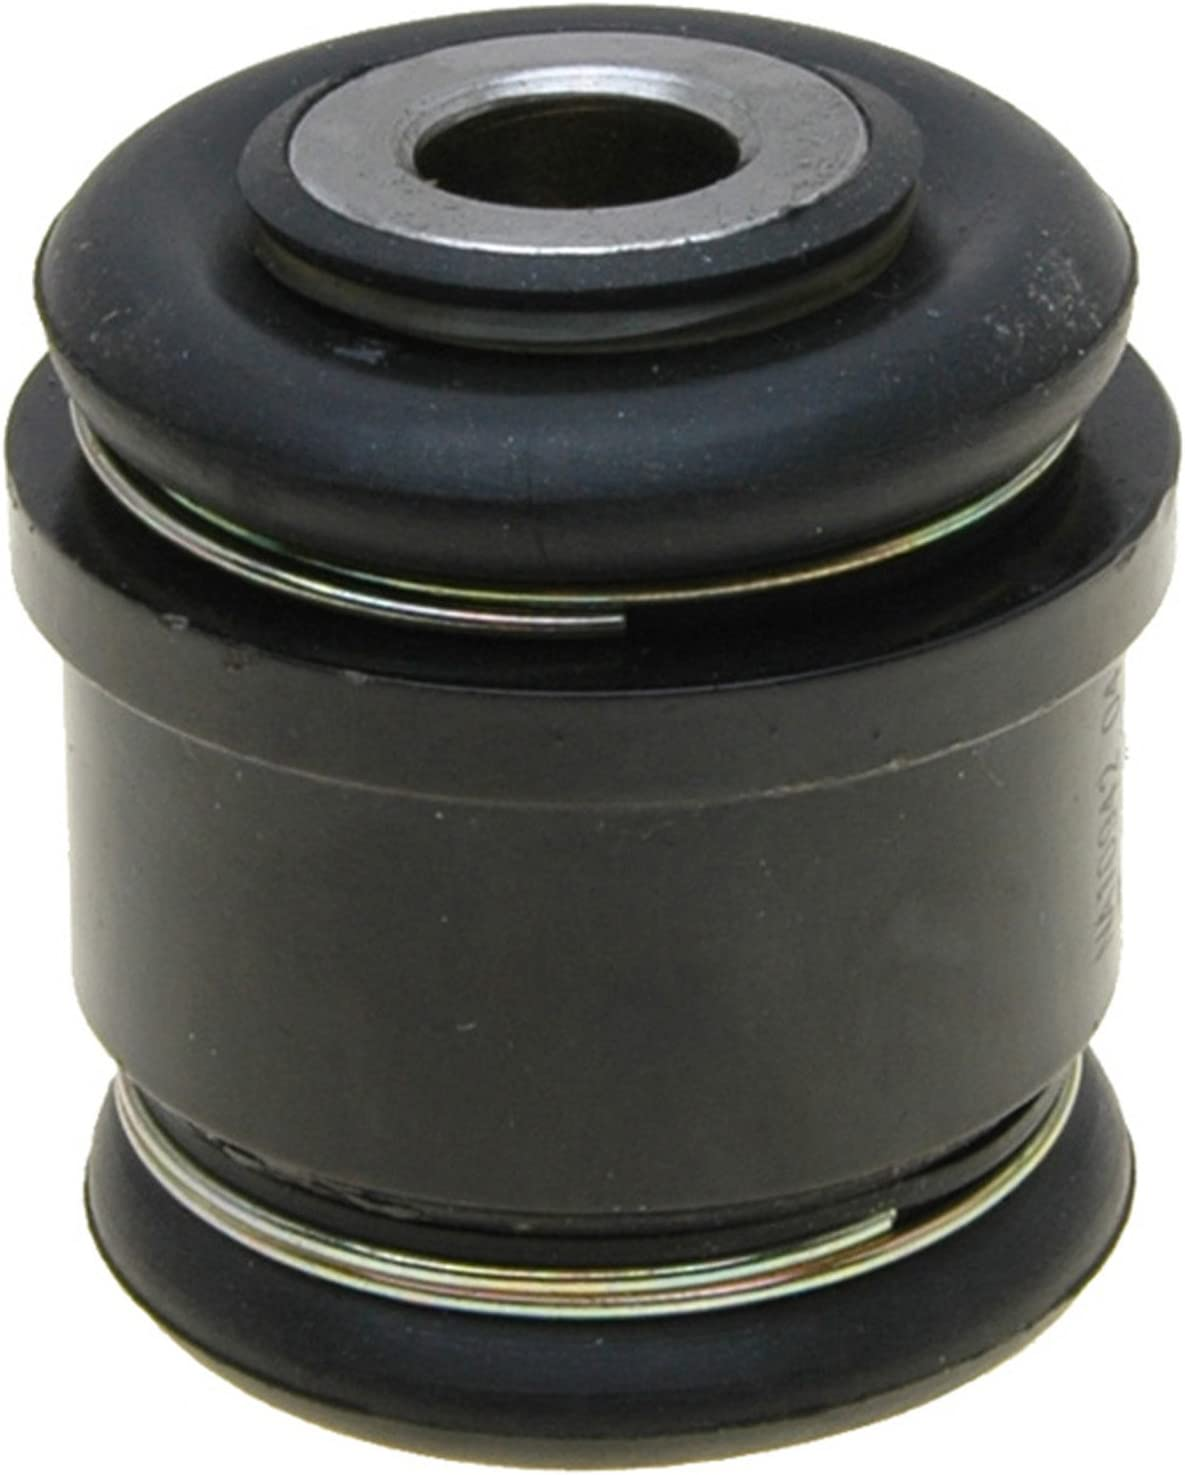 ACDelco Professional security 45G1103 Max 90% OFF Rear Suspension Lower Knuckle Bushi